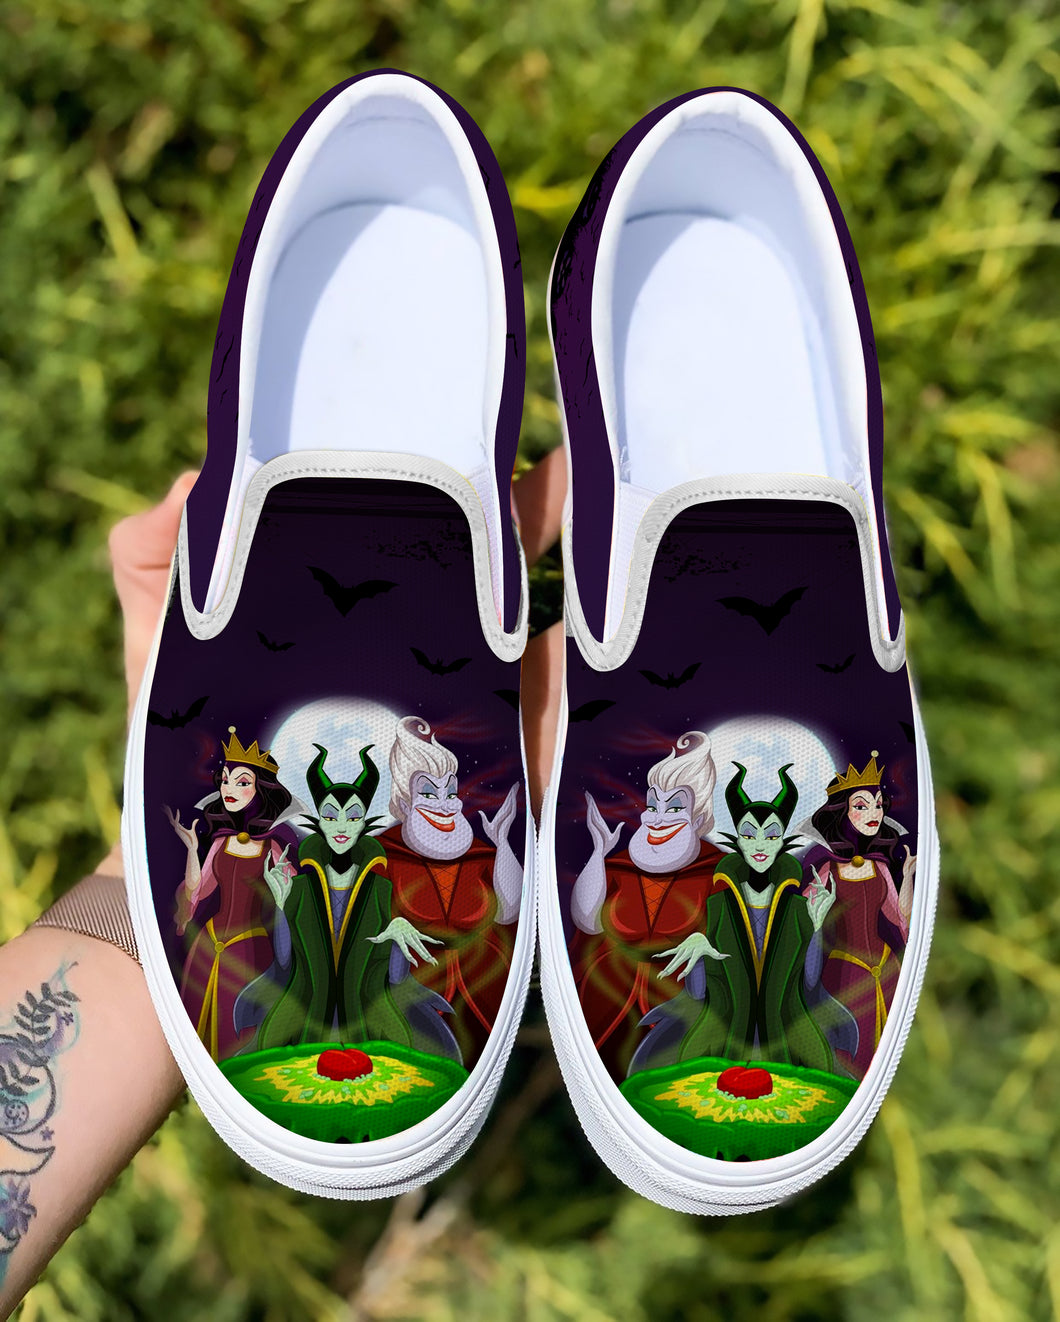 Disney Villains Halloween